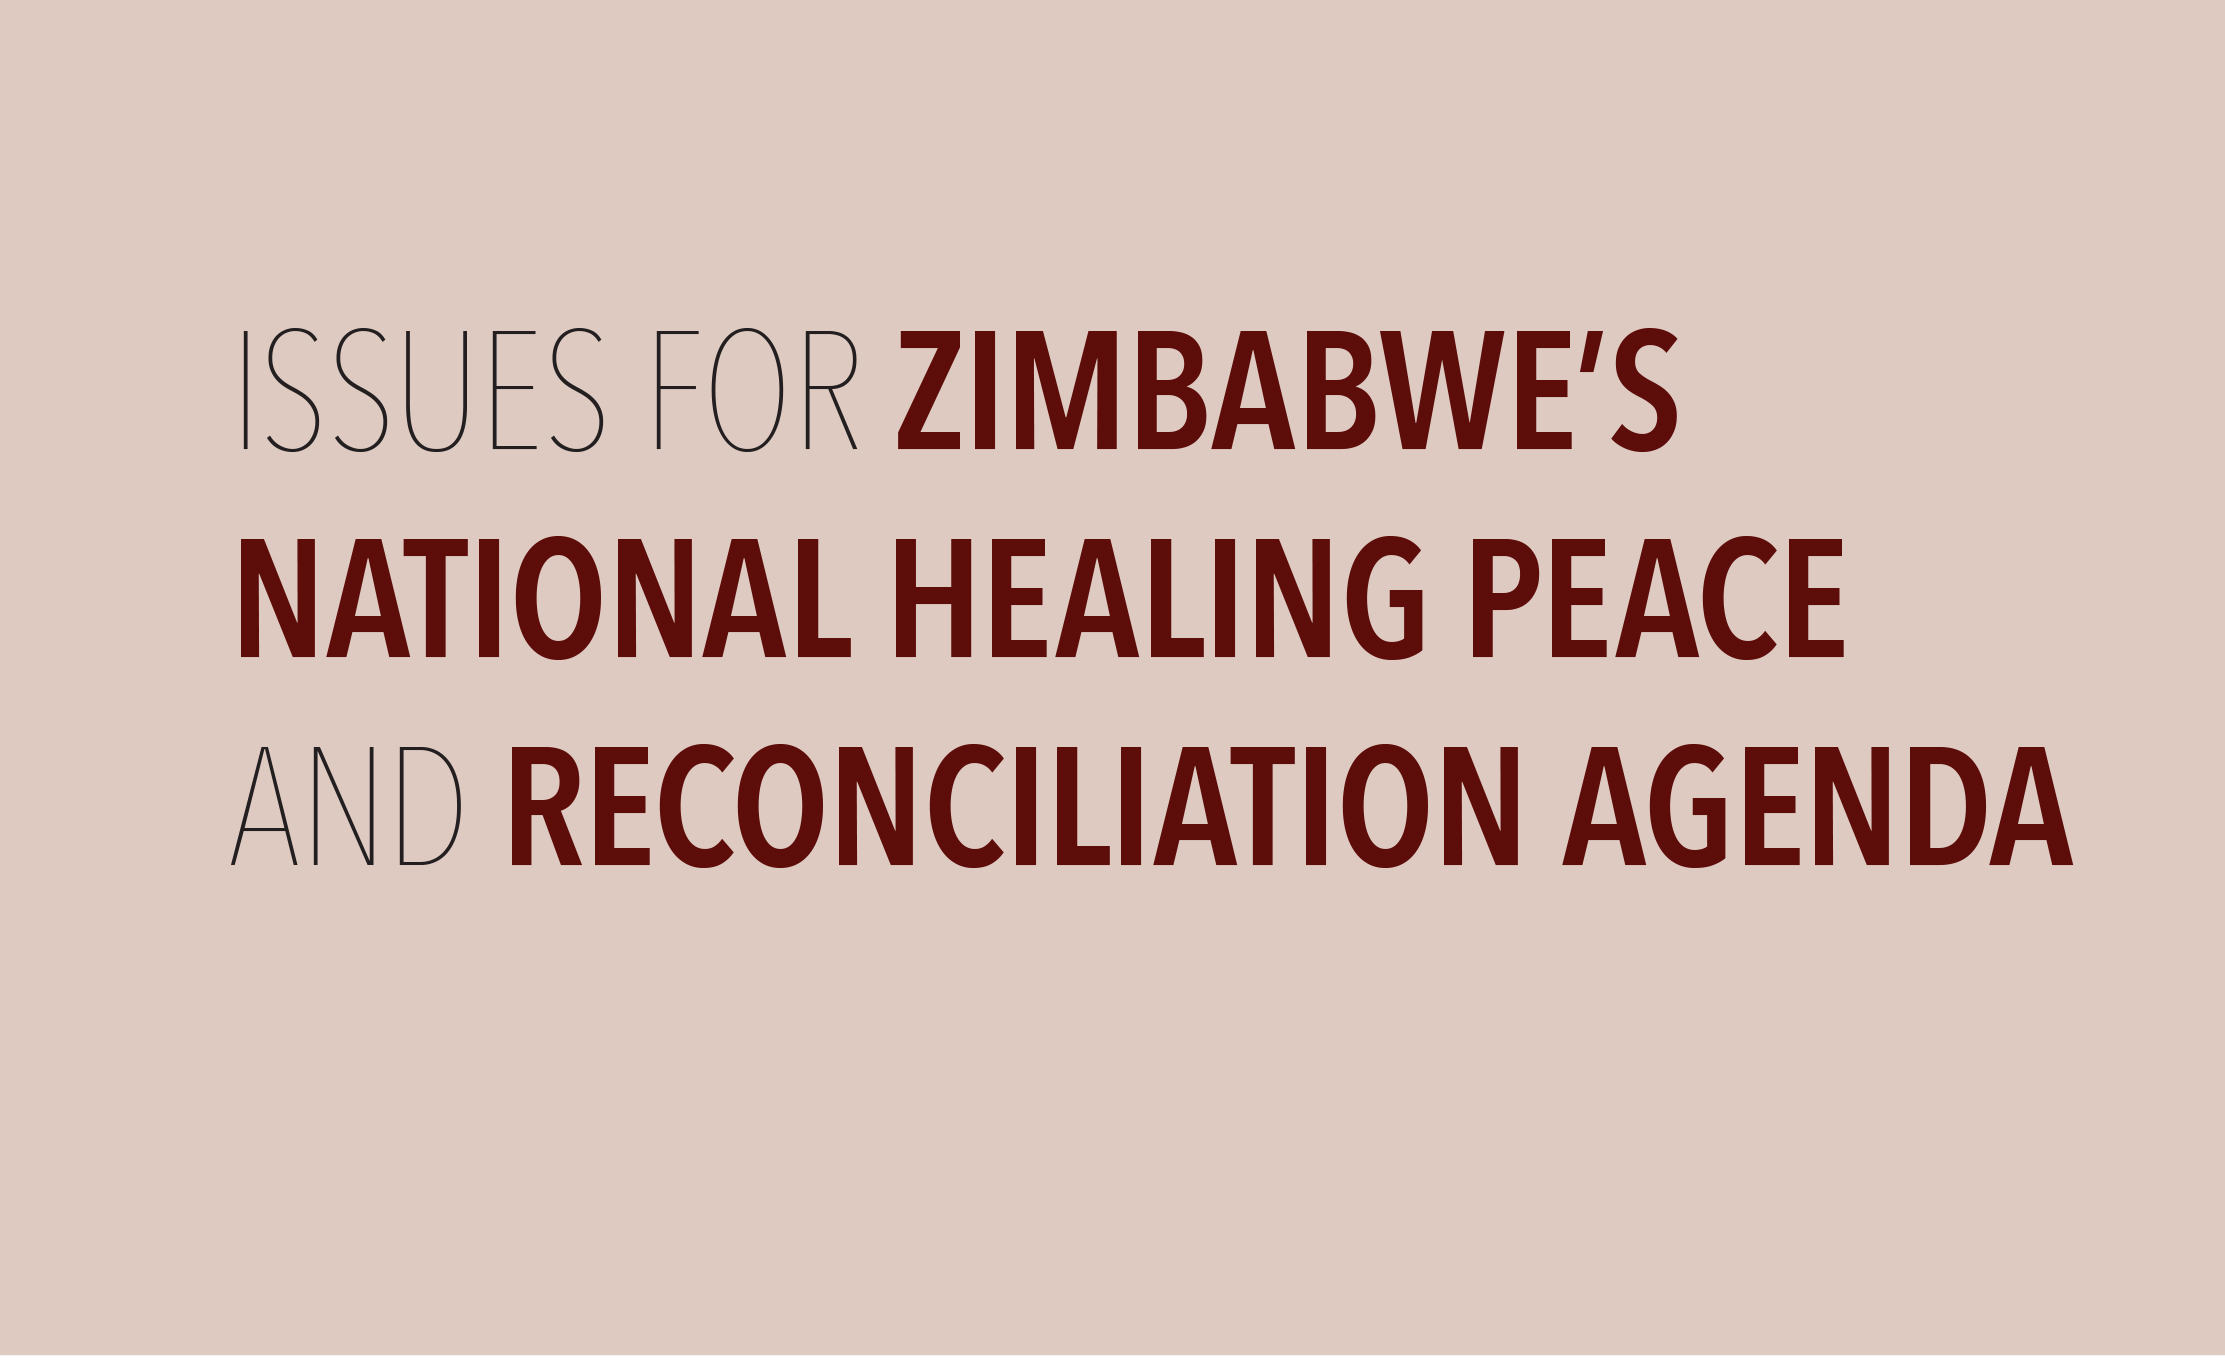 Issues for Zimbabwe's National Healing Peace and Reconciliation Agenda